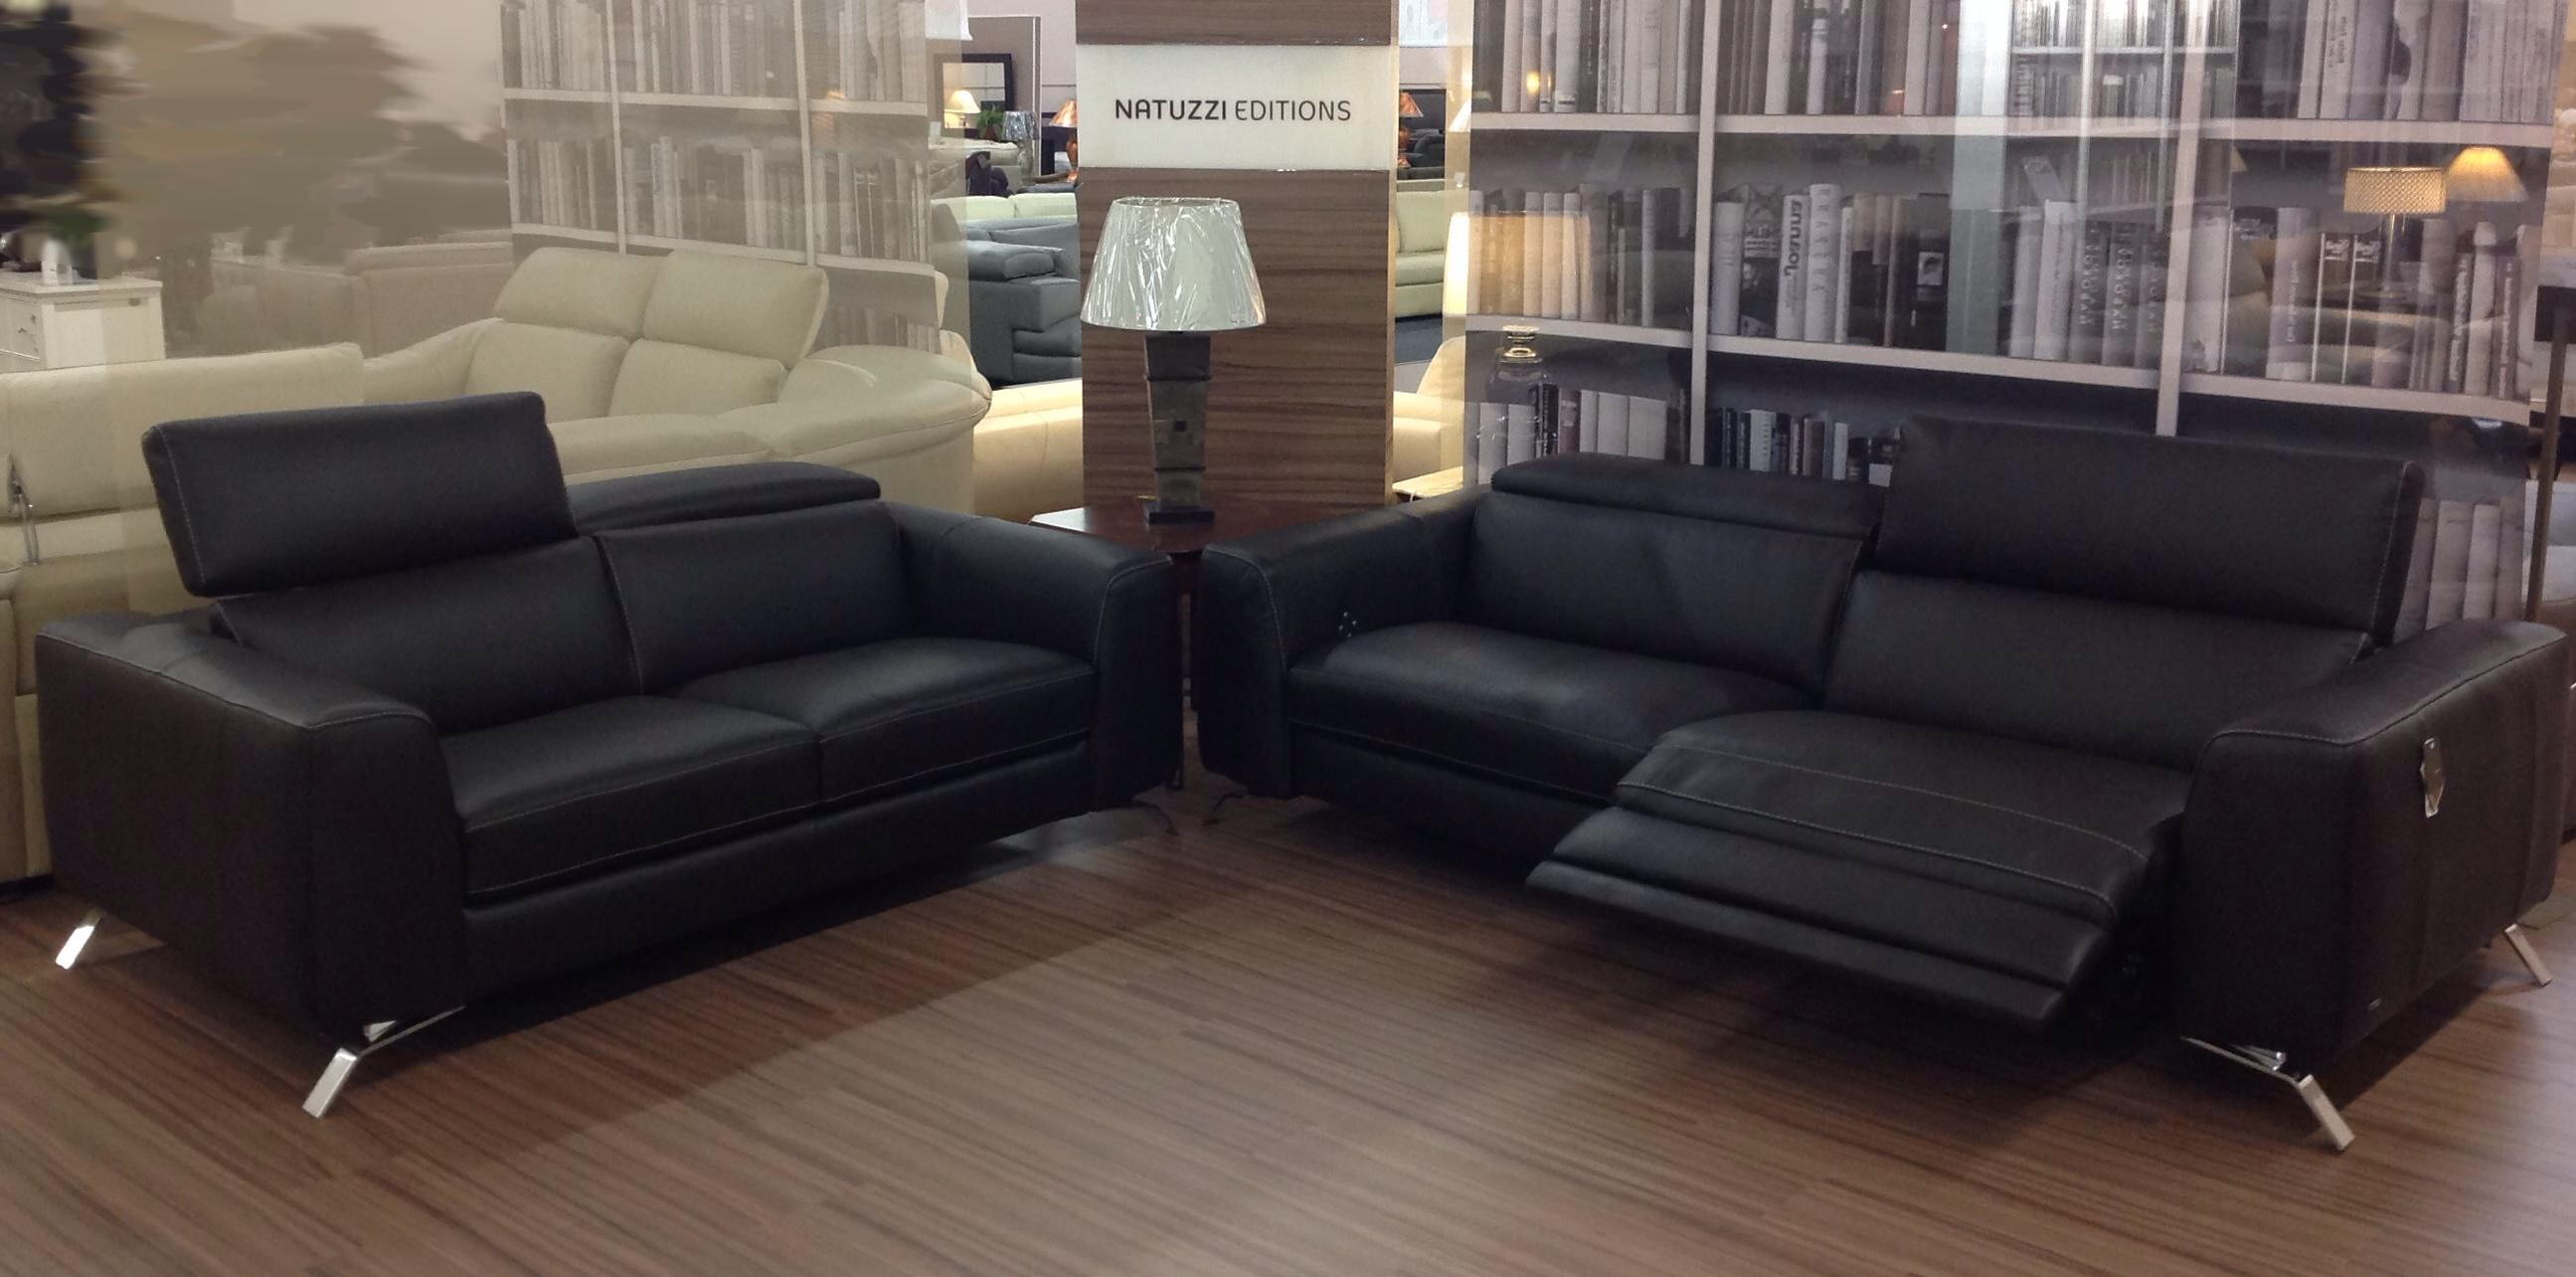 Natuzzi Editions Available Models Gallery Launch